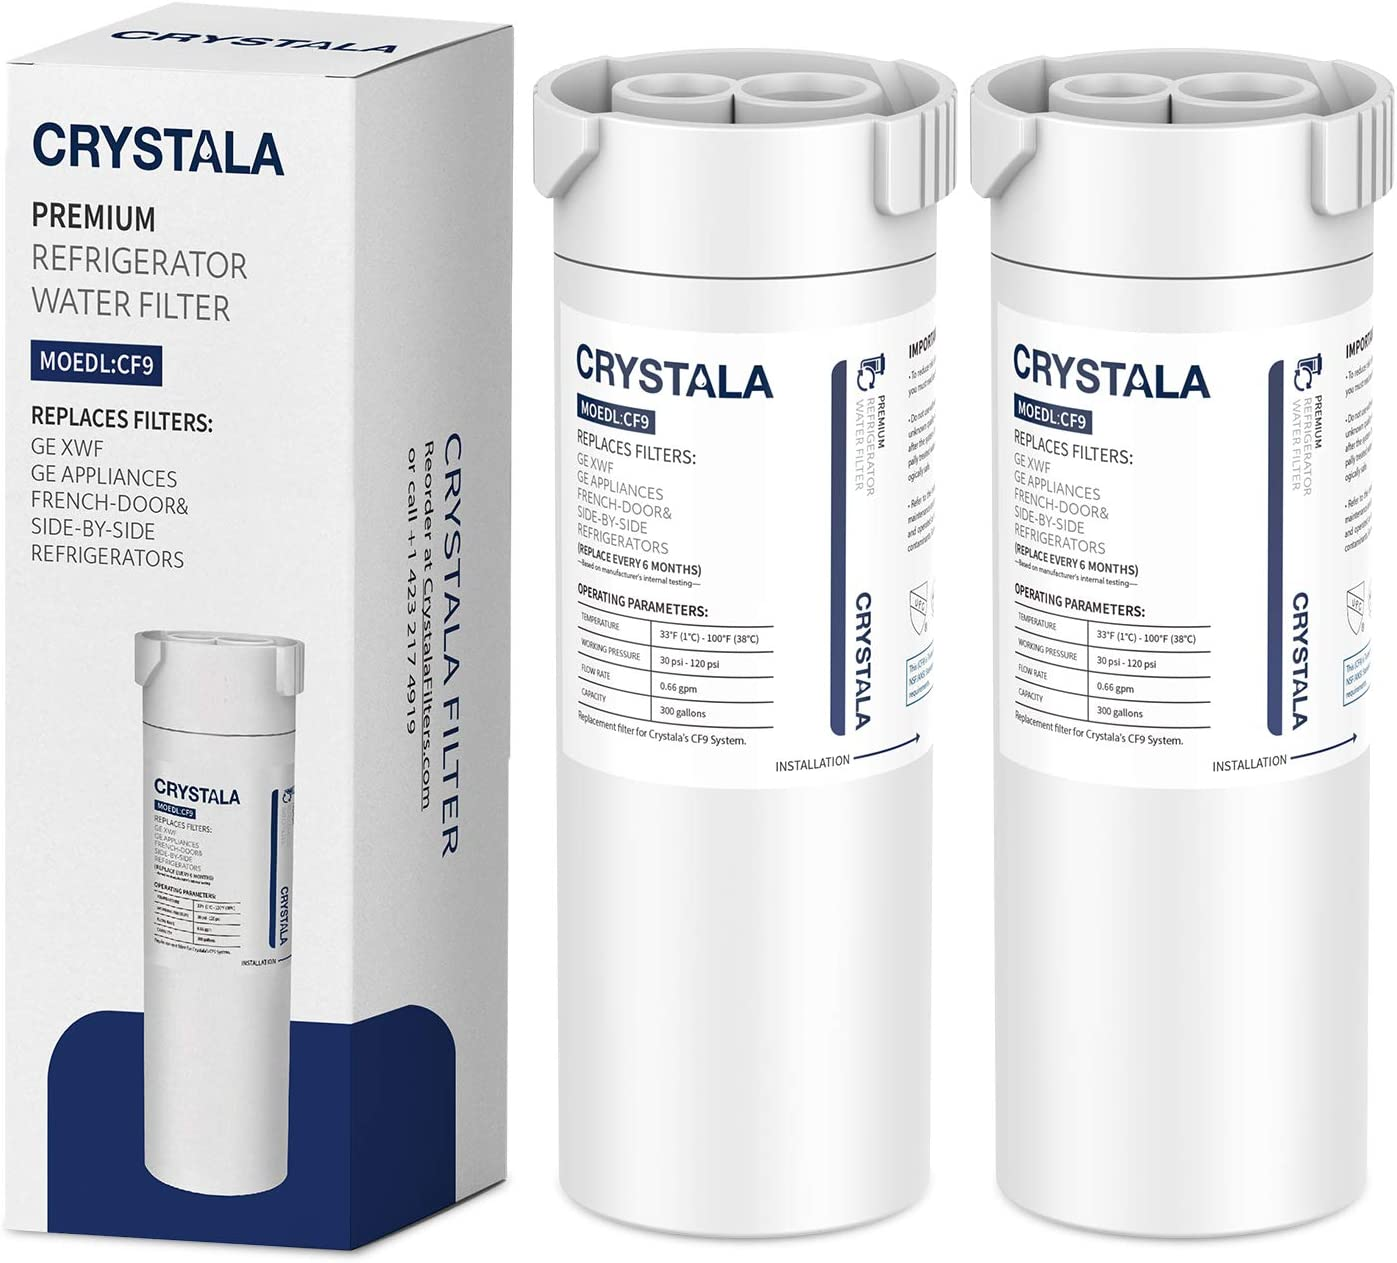 Crystala Filters Compatible with GE XWF Water Filter, Replacement for GE SmartWater Refrigerator Water Filter, (2 PACK)